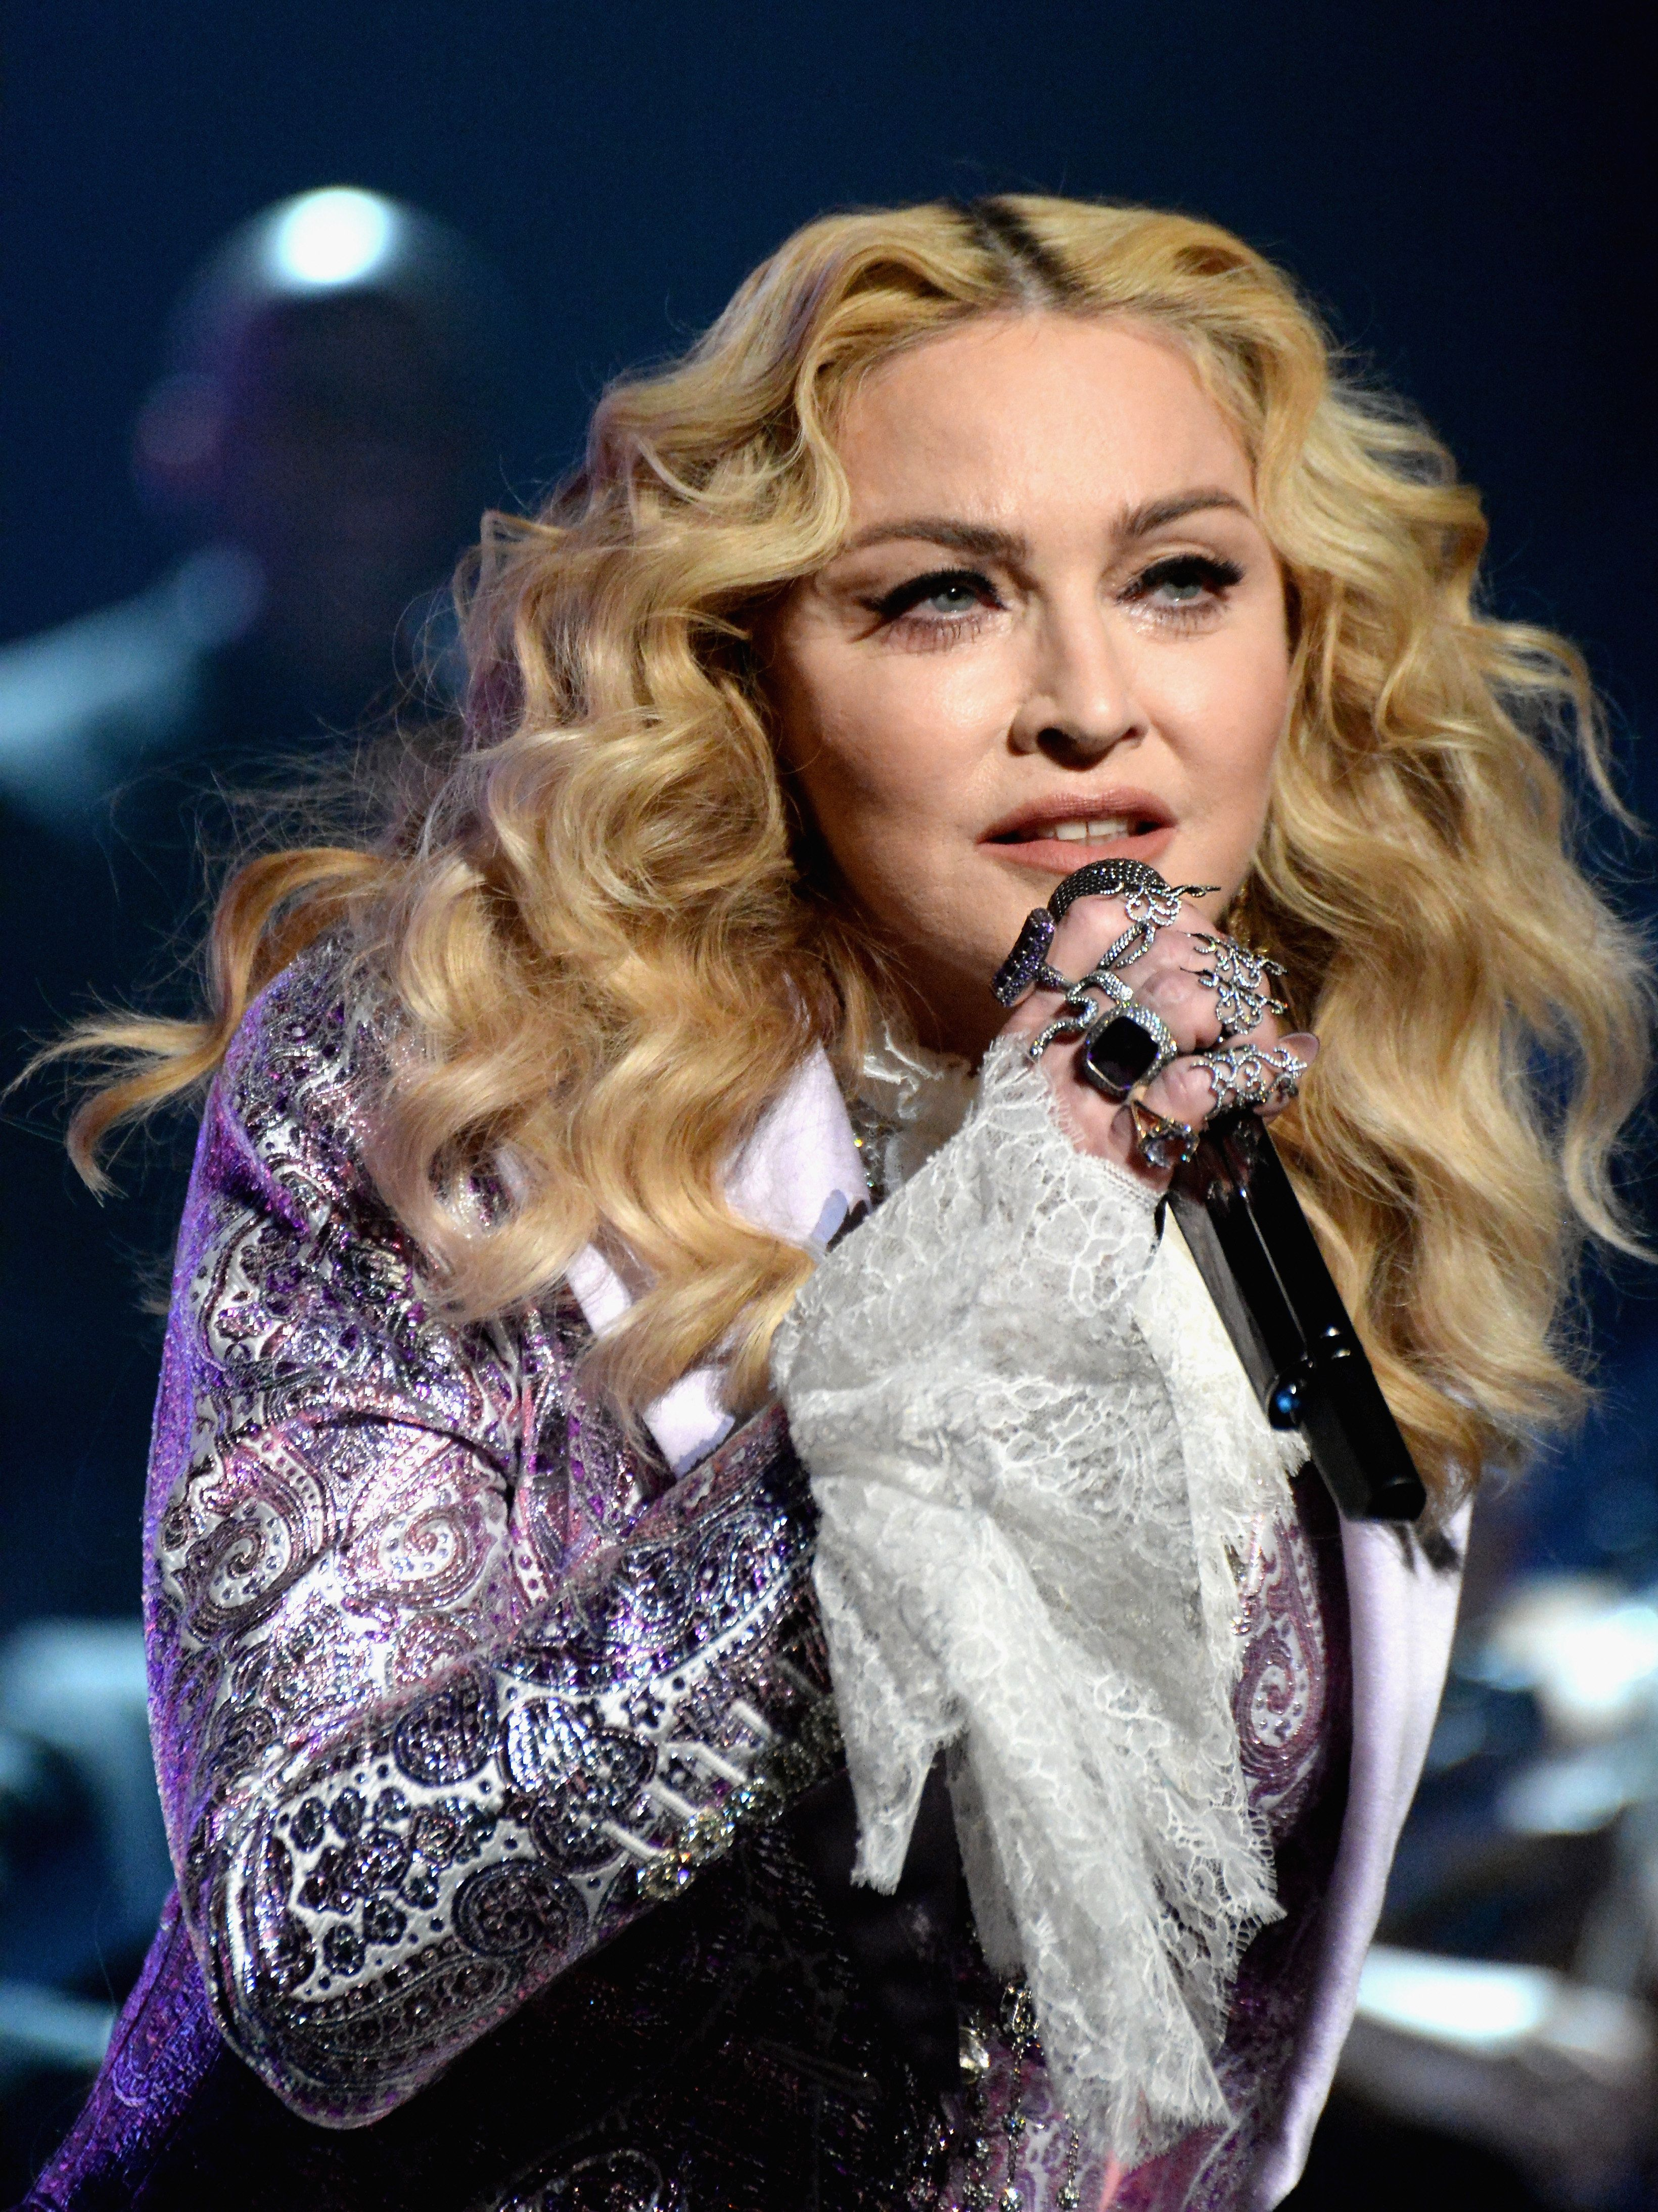 LAS VEGAS, NV - MAY 22:  Recording artist Madonna performs a tribute to Prince onstage during the 2016 Billboard Music Awards at T-Mobile Arena on May 22, 2016 in Las Vegas, Nevada.  (Photo by Jeff Kravitz/BBMA2016/FilmMagic)